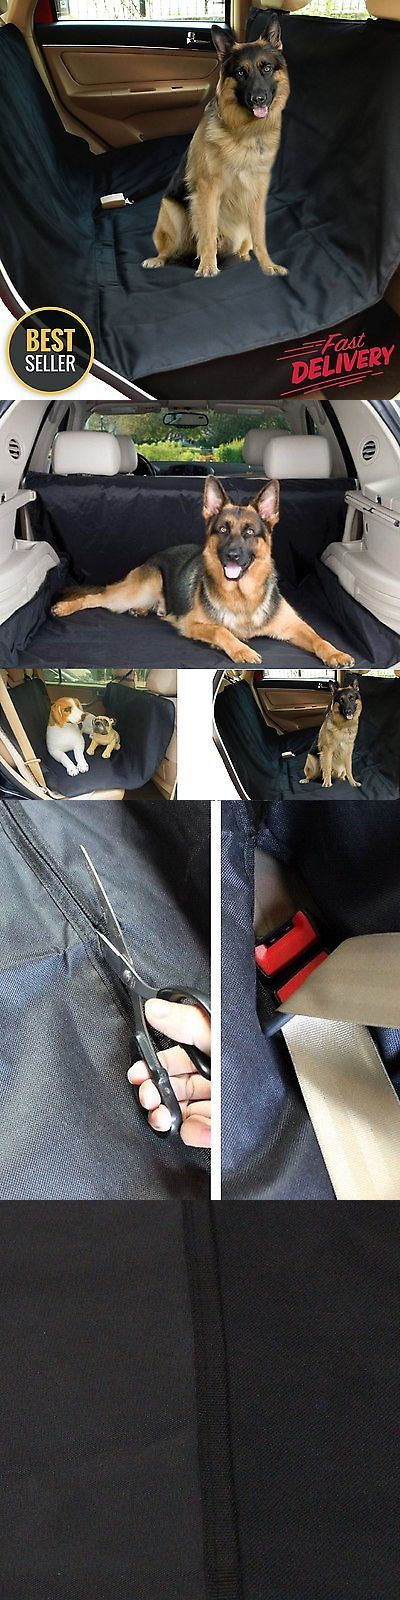 SUVs: Pet Car Suv Van Back Rear Bench Seat Cover Waterproof Hammock For Dog Cat New -> BUY IT NOW ONLY: $12.99 on eBay!